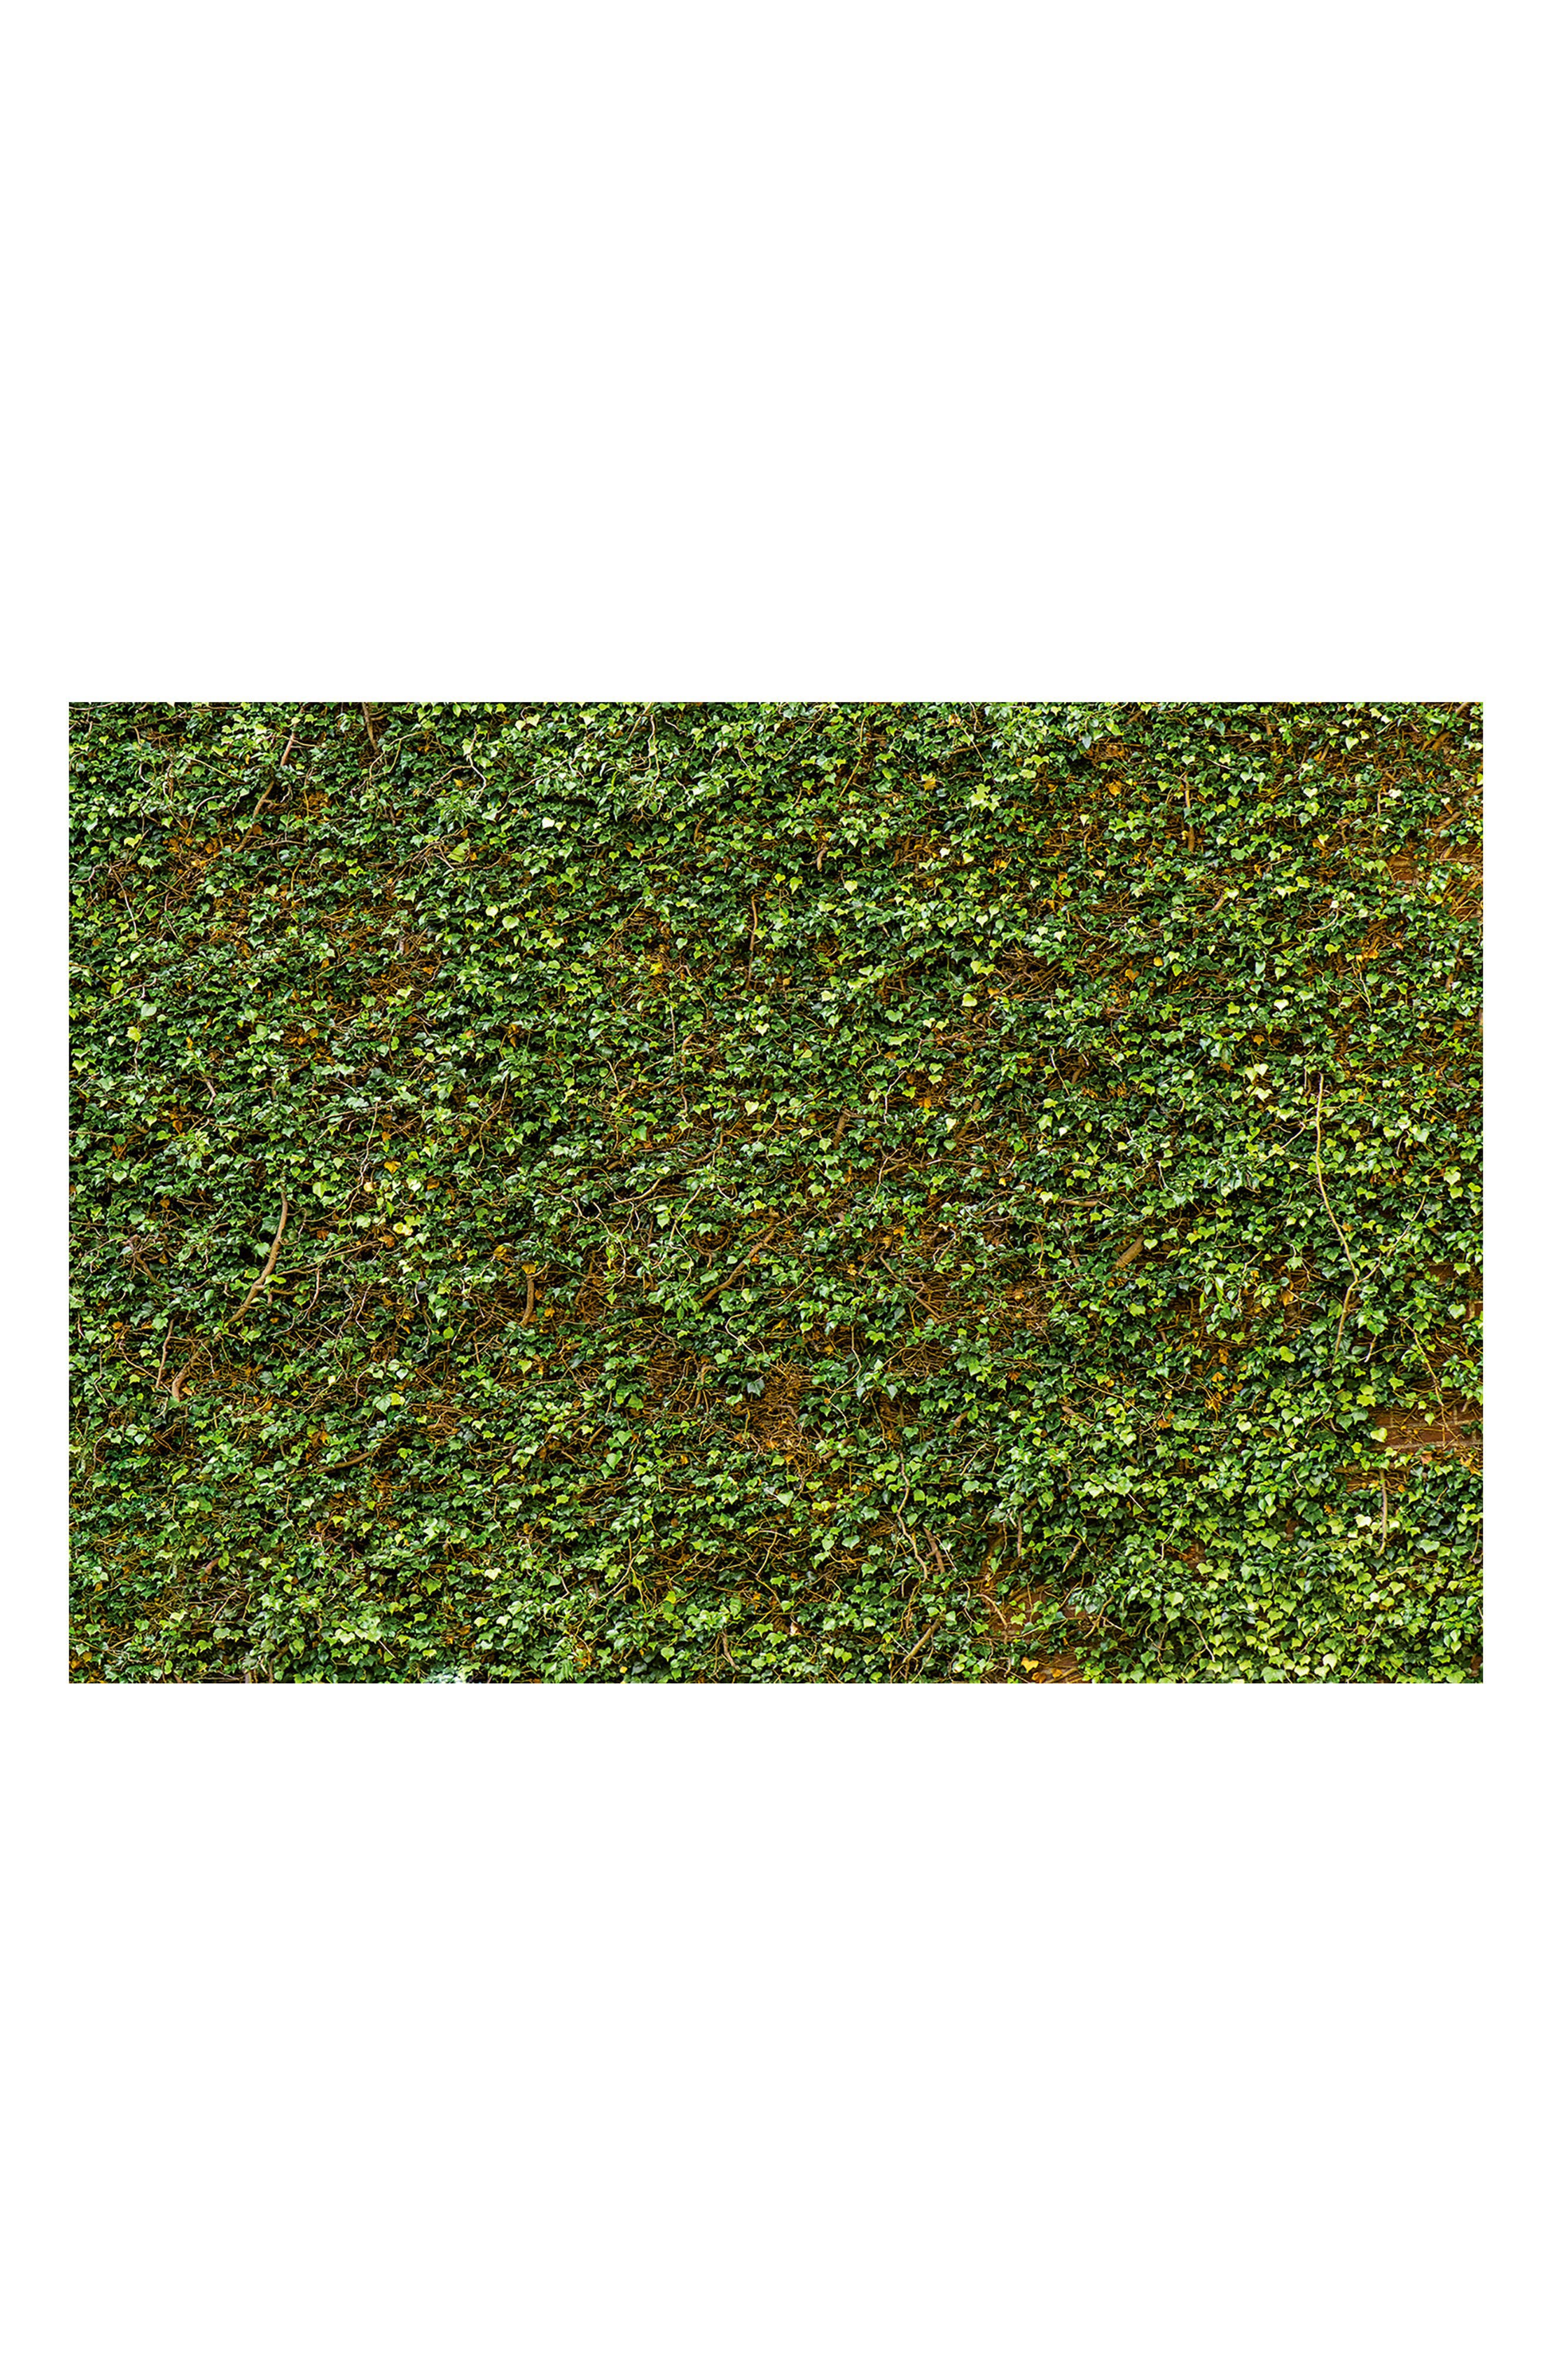 Alternate Image 1 Selected - Wallpops Ivy 8-Panel Wall Mural